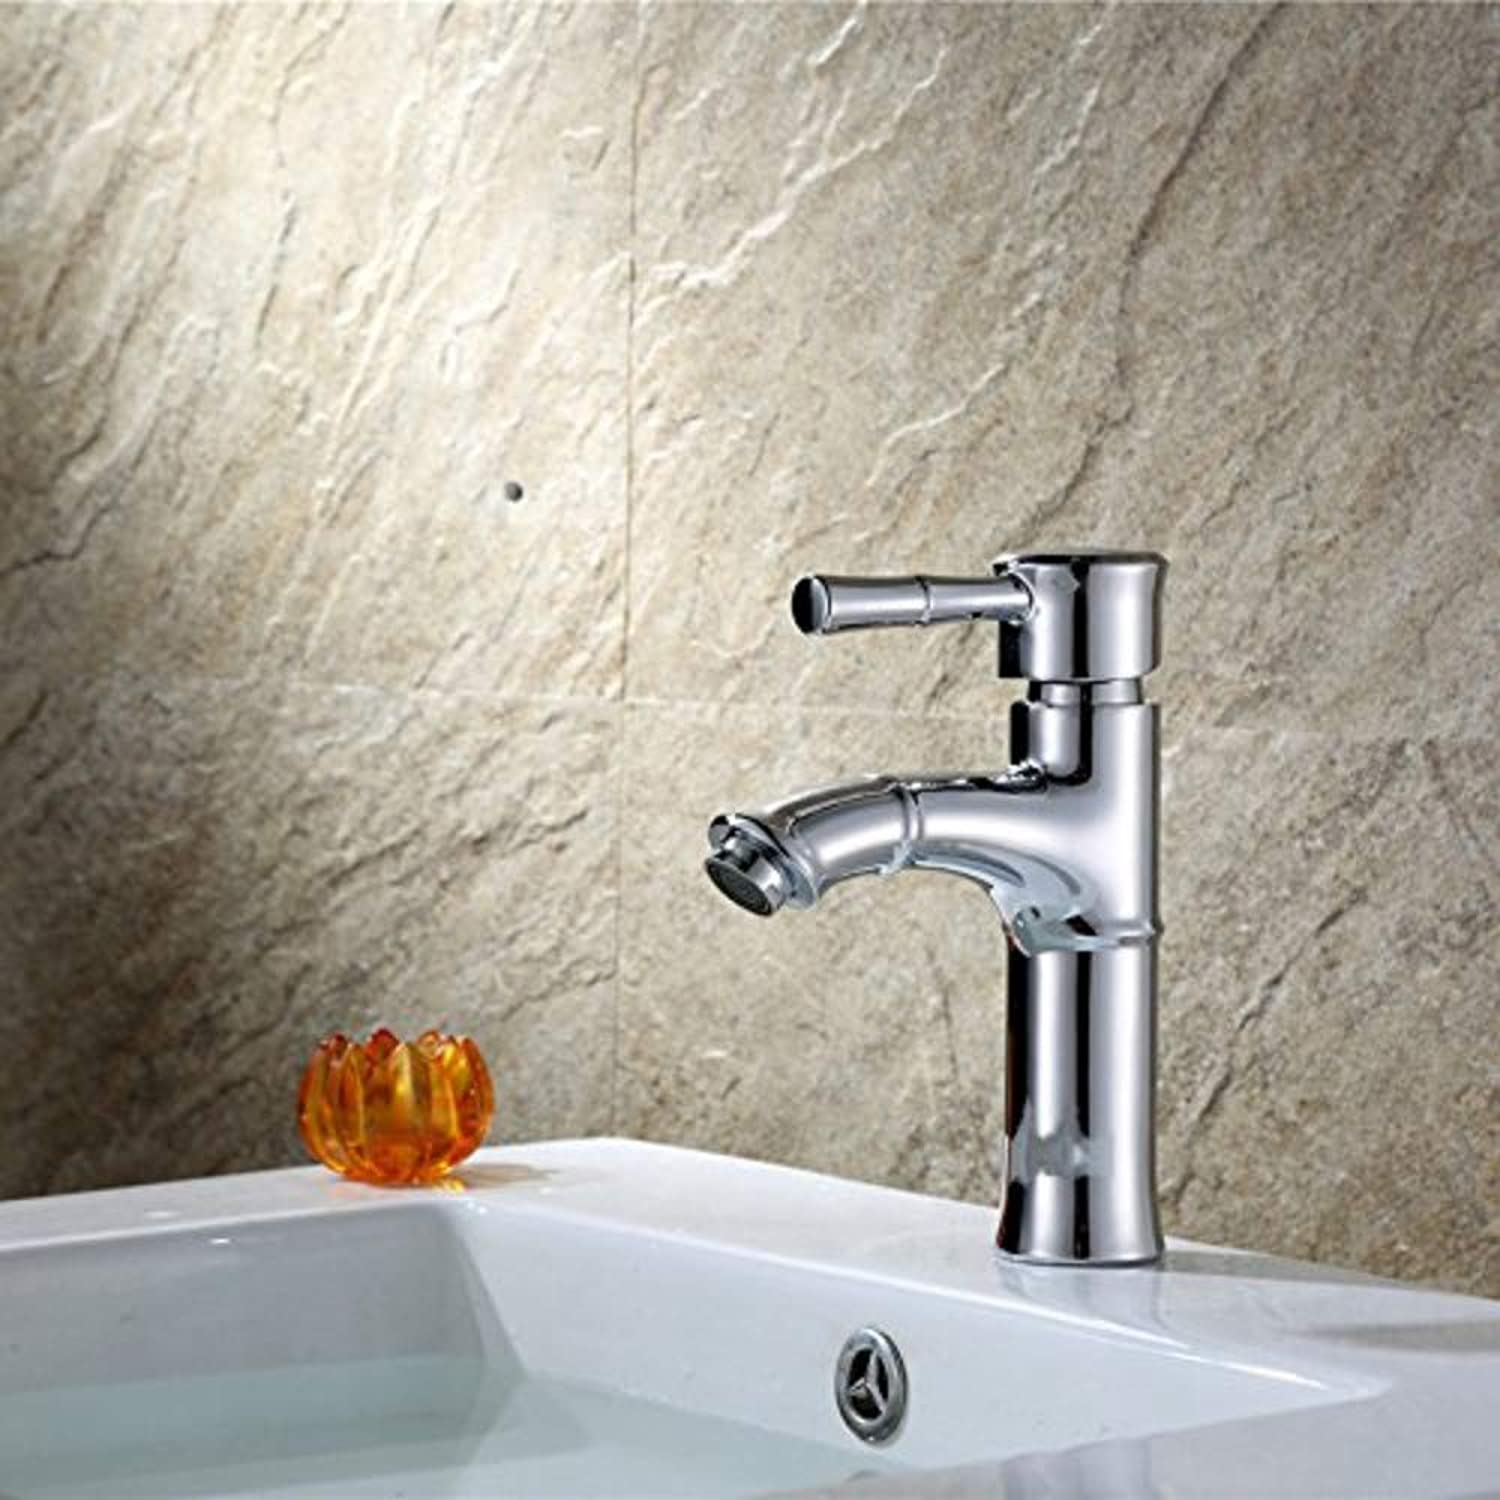 Water Tap Basin Hot and Cold Water Mixing Single Hole Modern Taps Kitchen Brass Faucet Bathroom Sink Waterfall Tap Mixer Water Washroom Bath Tub Shower